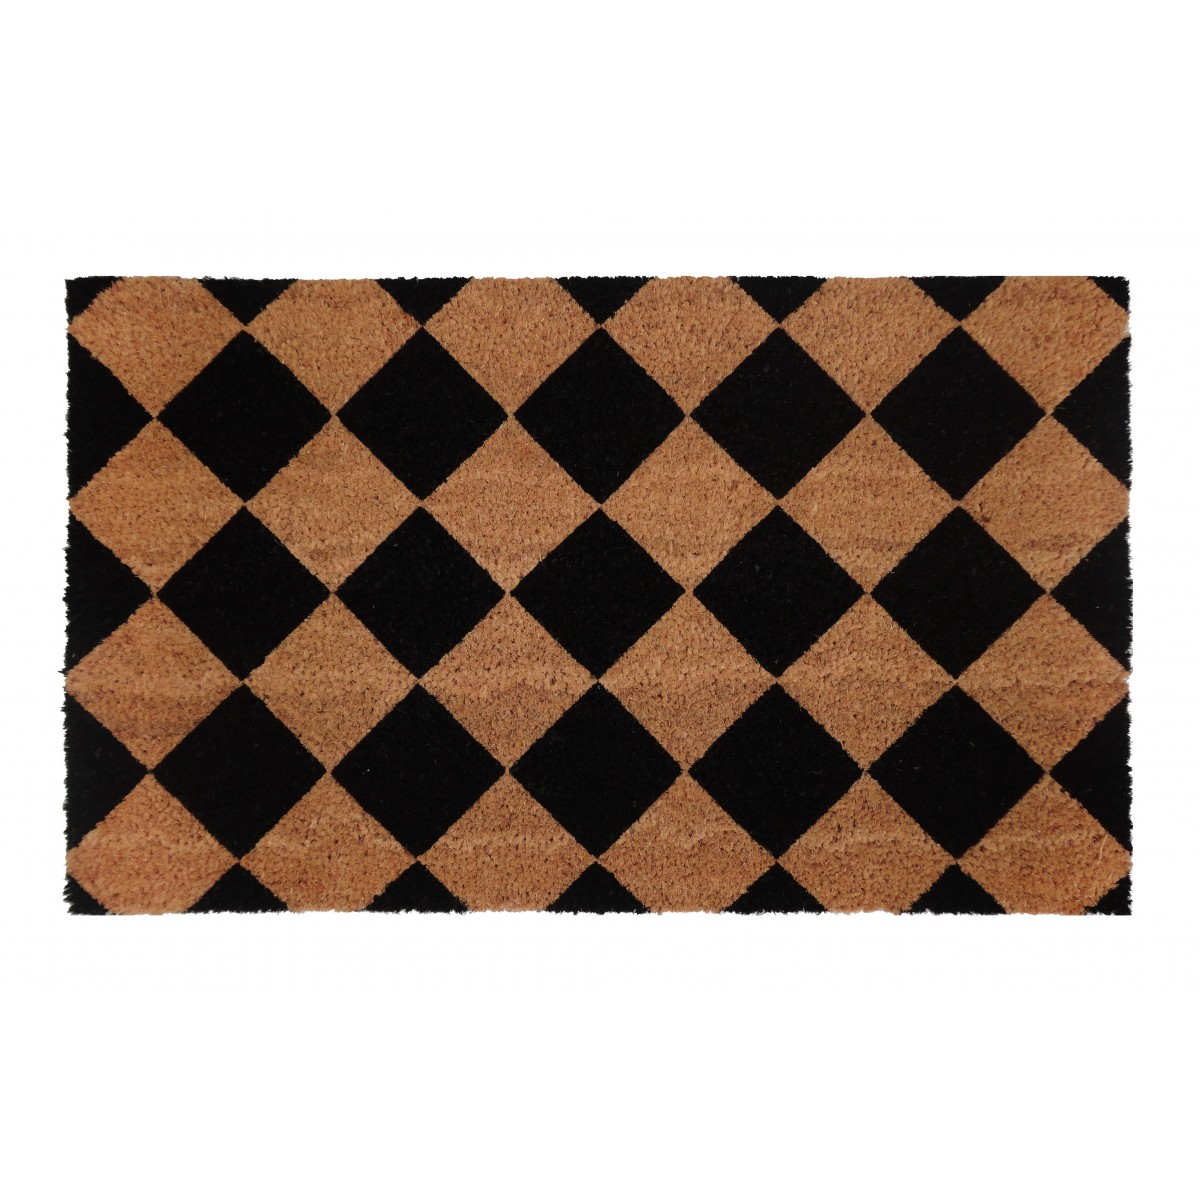 PVC Backed Coir Door Mat Black Diamond